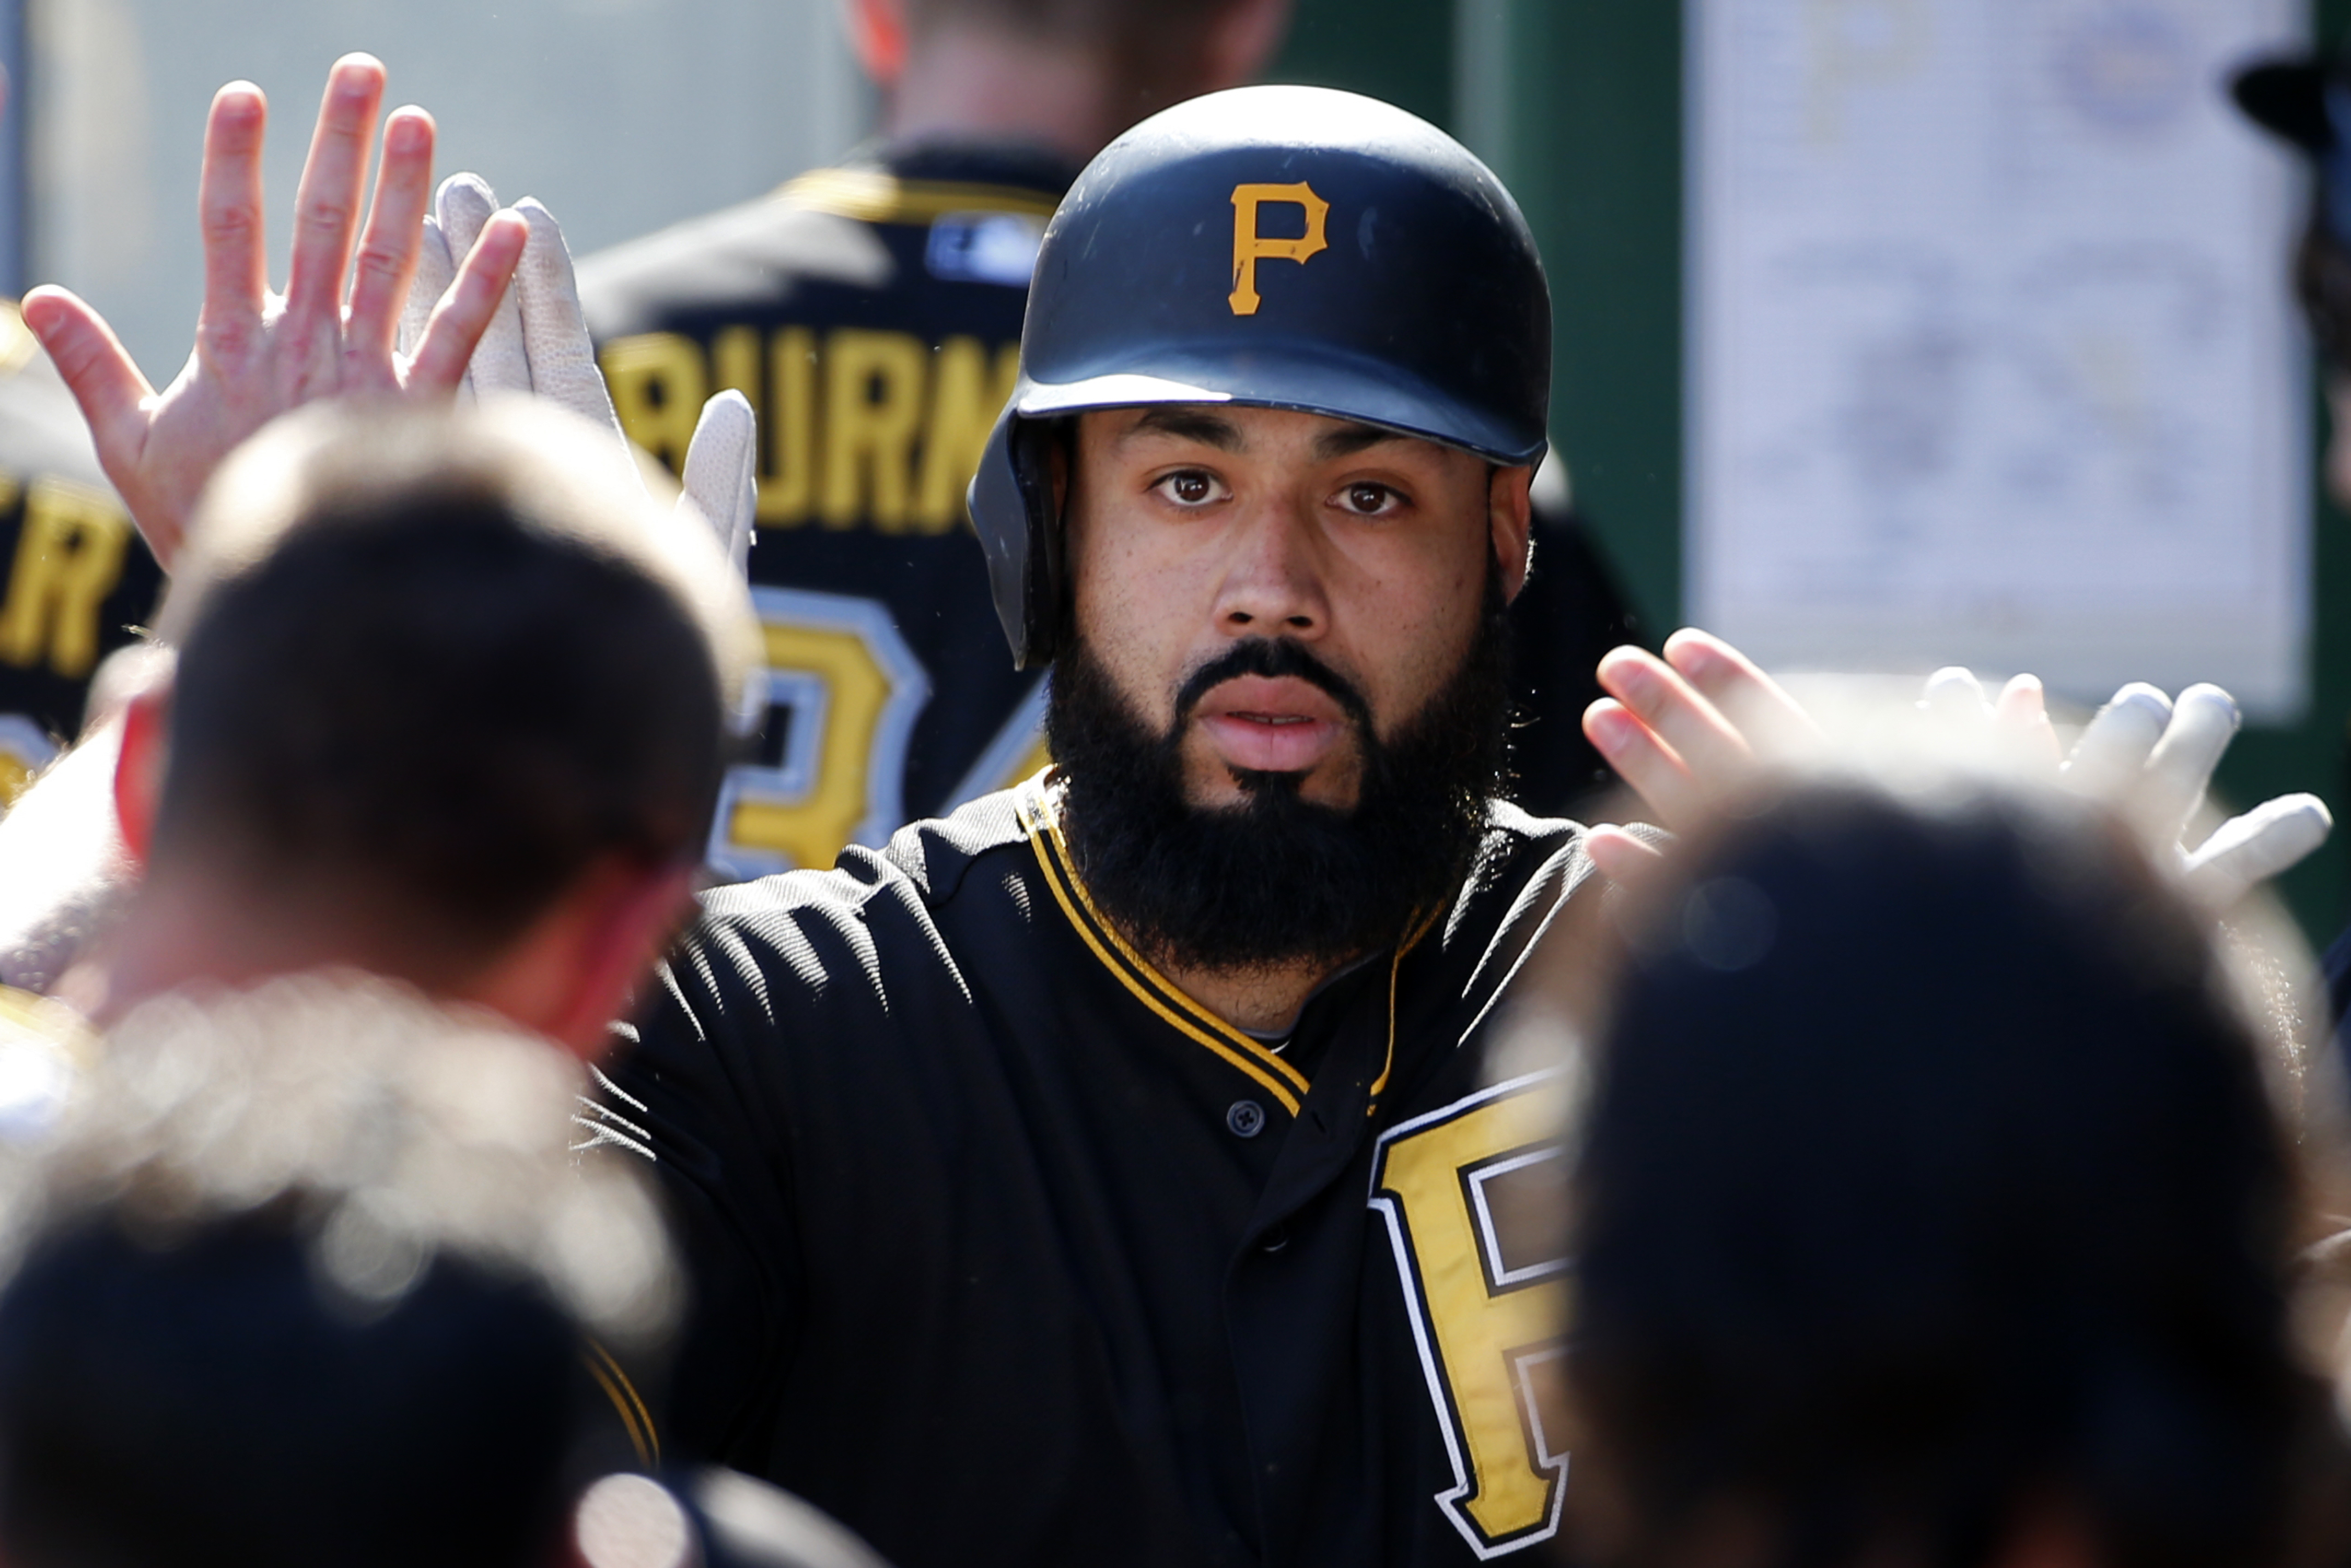 Pittsburgh Pirates' Pedro Alvarez celebrates with teammates in the dugout after hitting a solo home run off New York Mets starting pitcher Matt Harvey in the second inning of a baseball game in Pittsburgh, Saturday, May 23, 2015. (AP Photo/Gene J. Puskar)